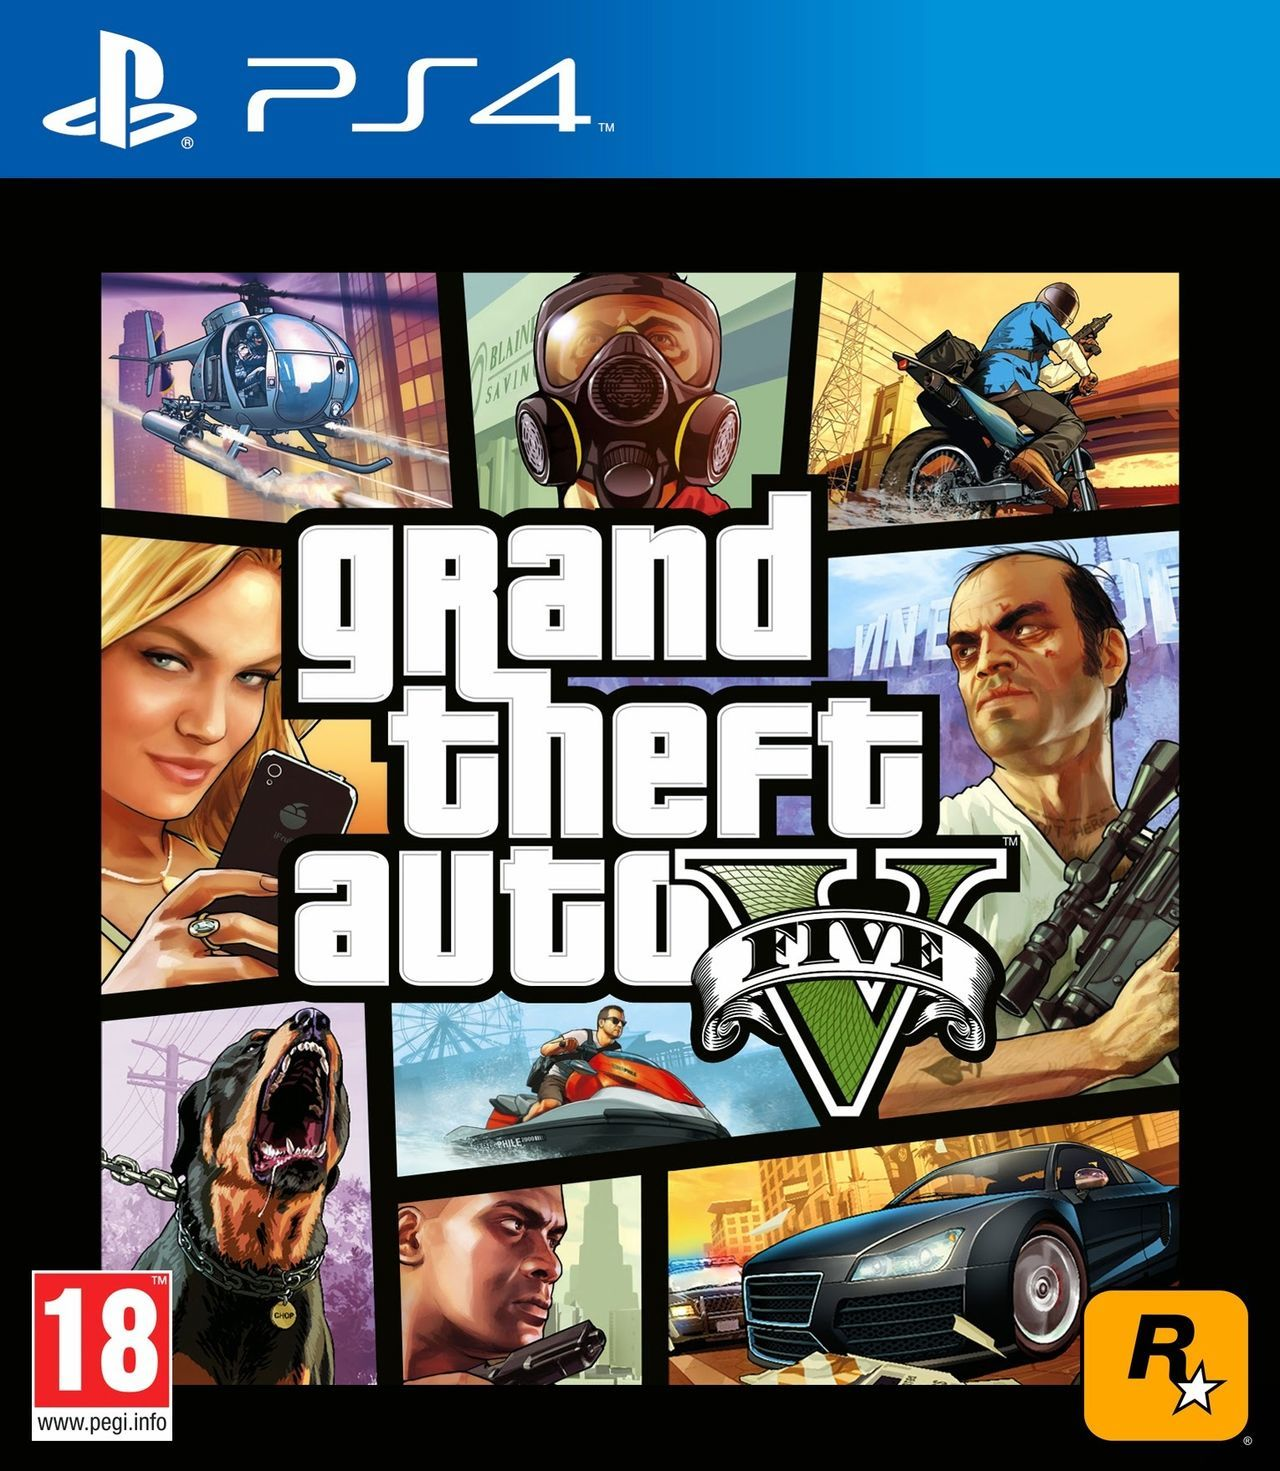 Imagen 108 de Grand Theft Auto V para PlayStation 4